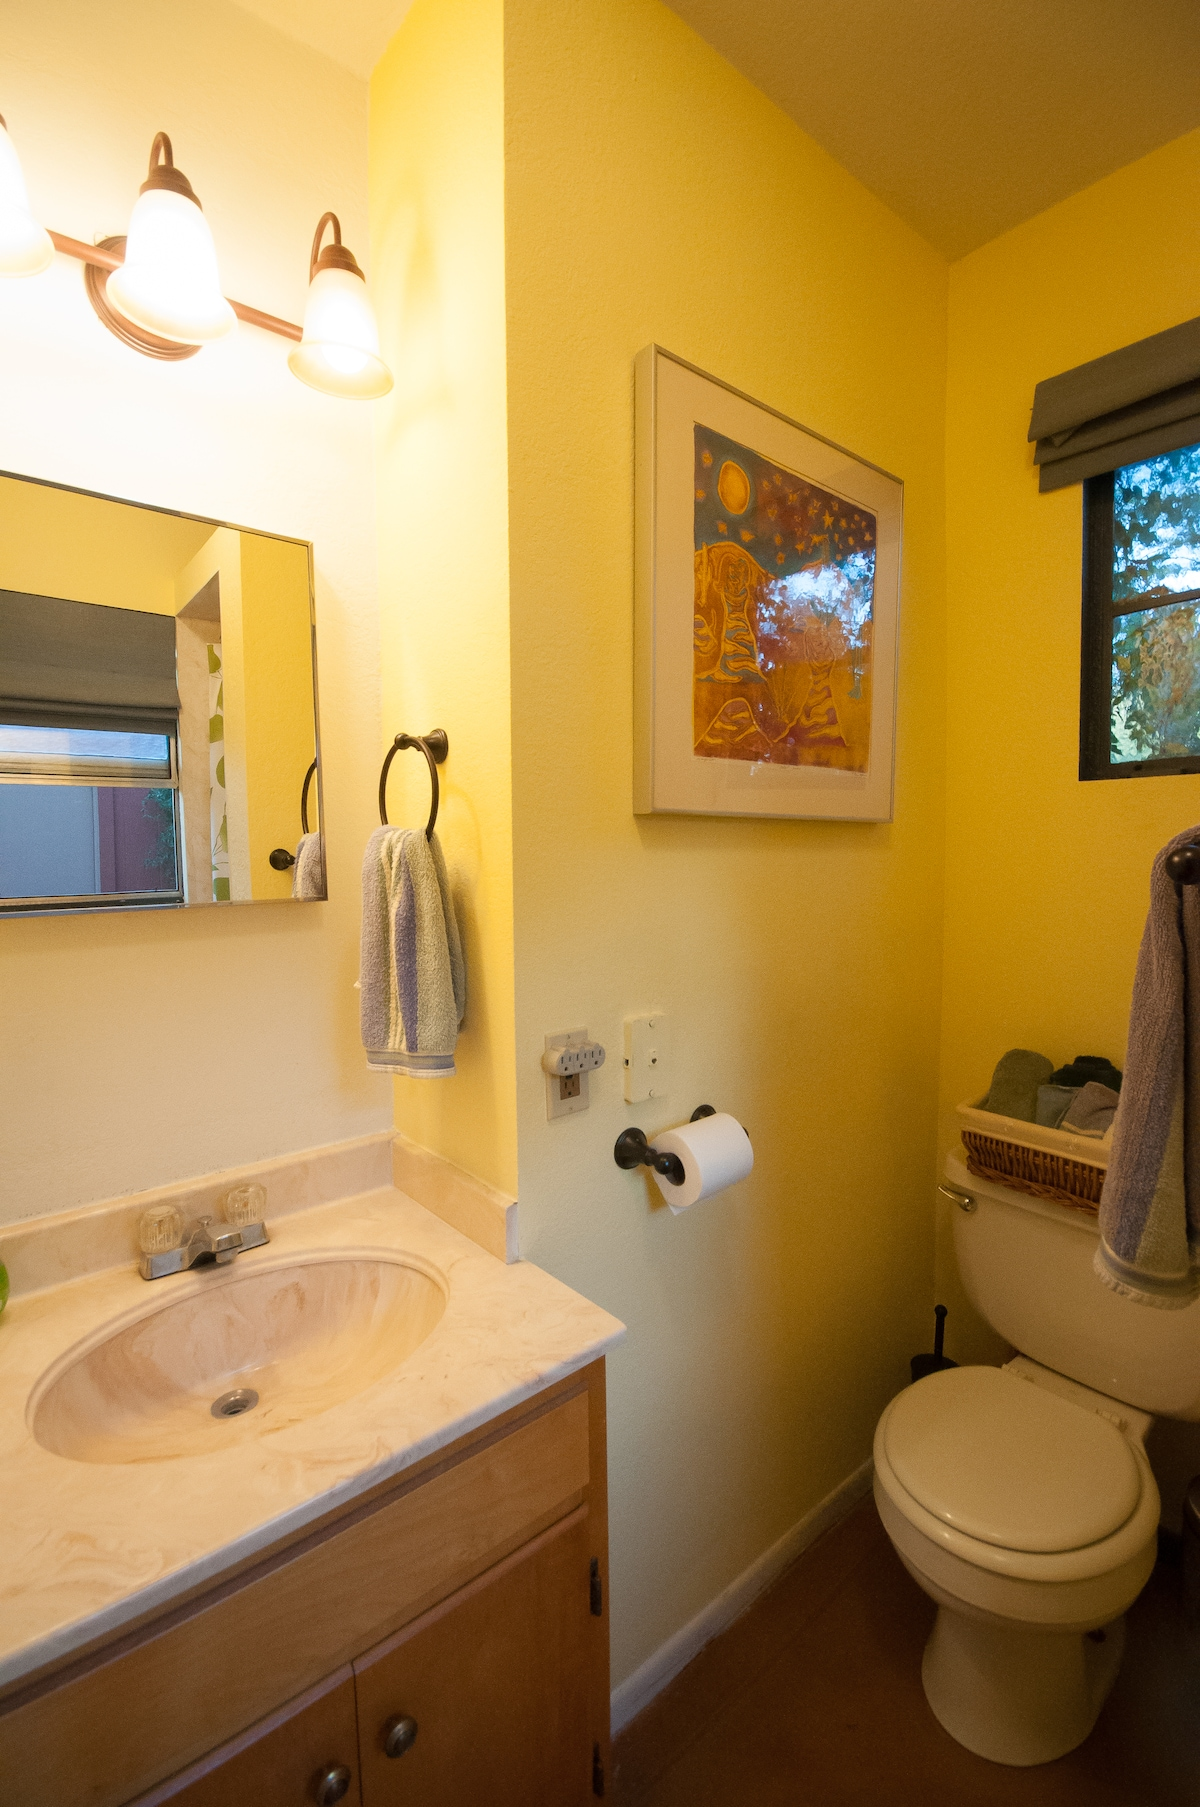 Private bathroom with vanity sink and shower.